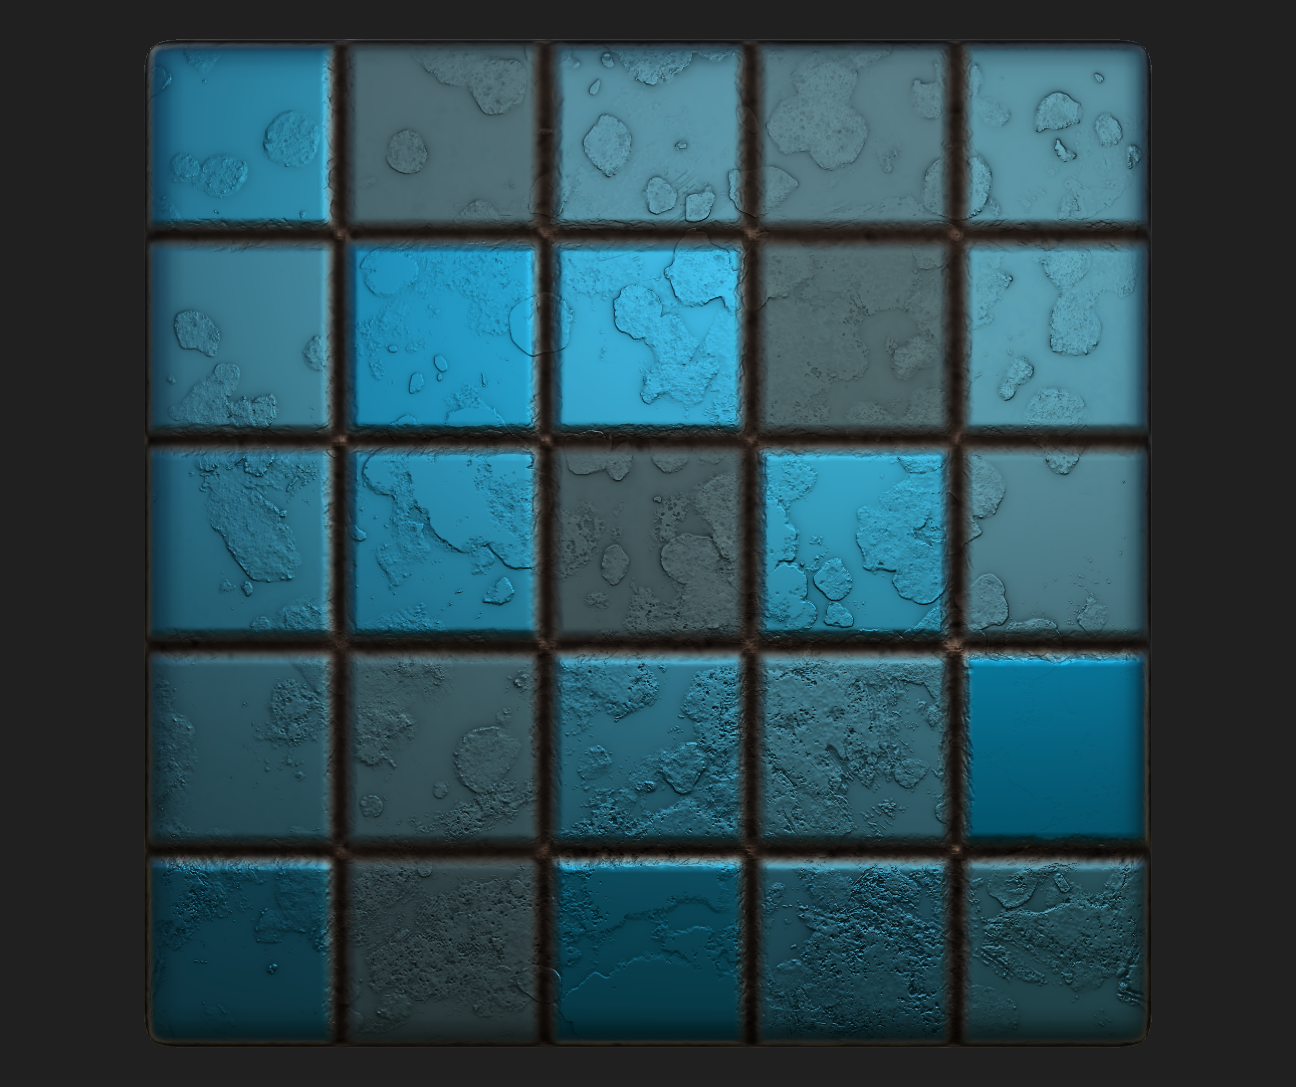 Tile_03_AO_Amount.png